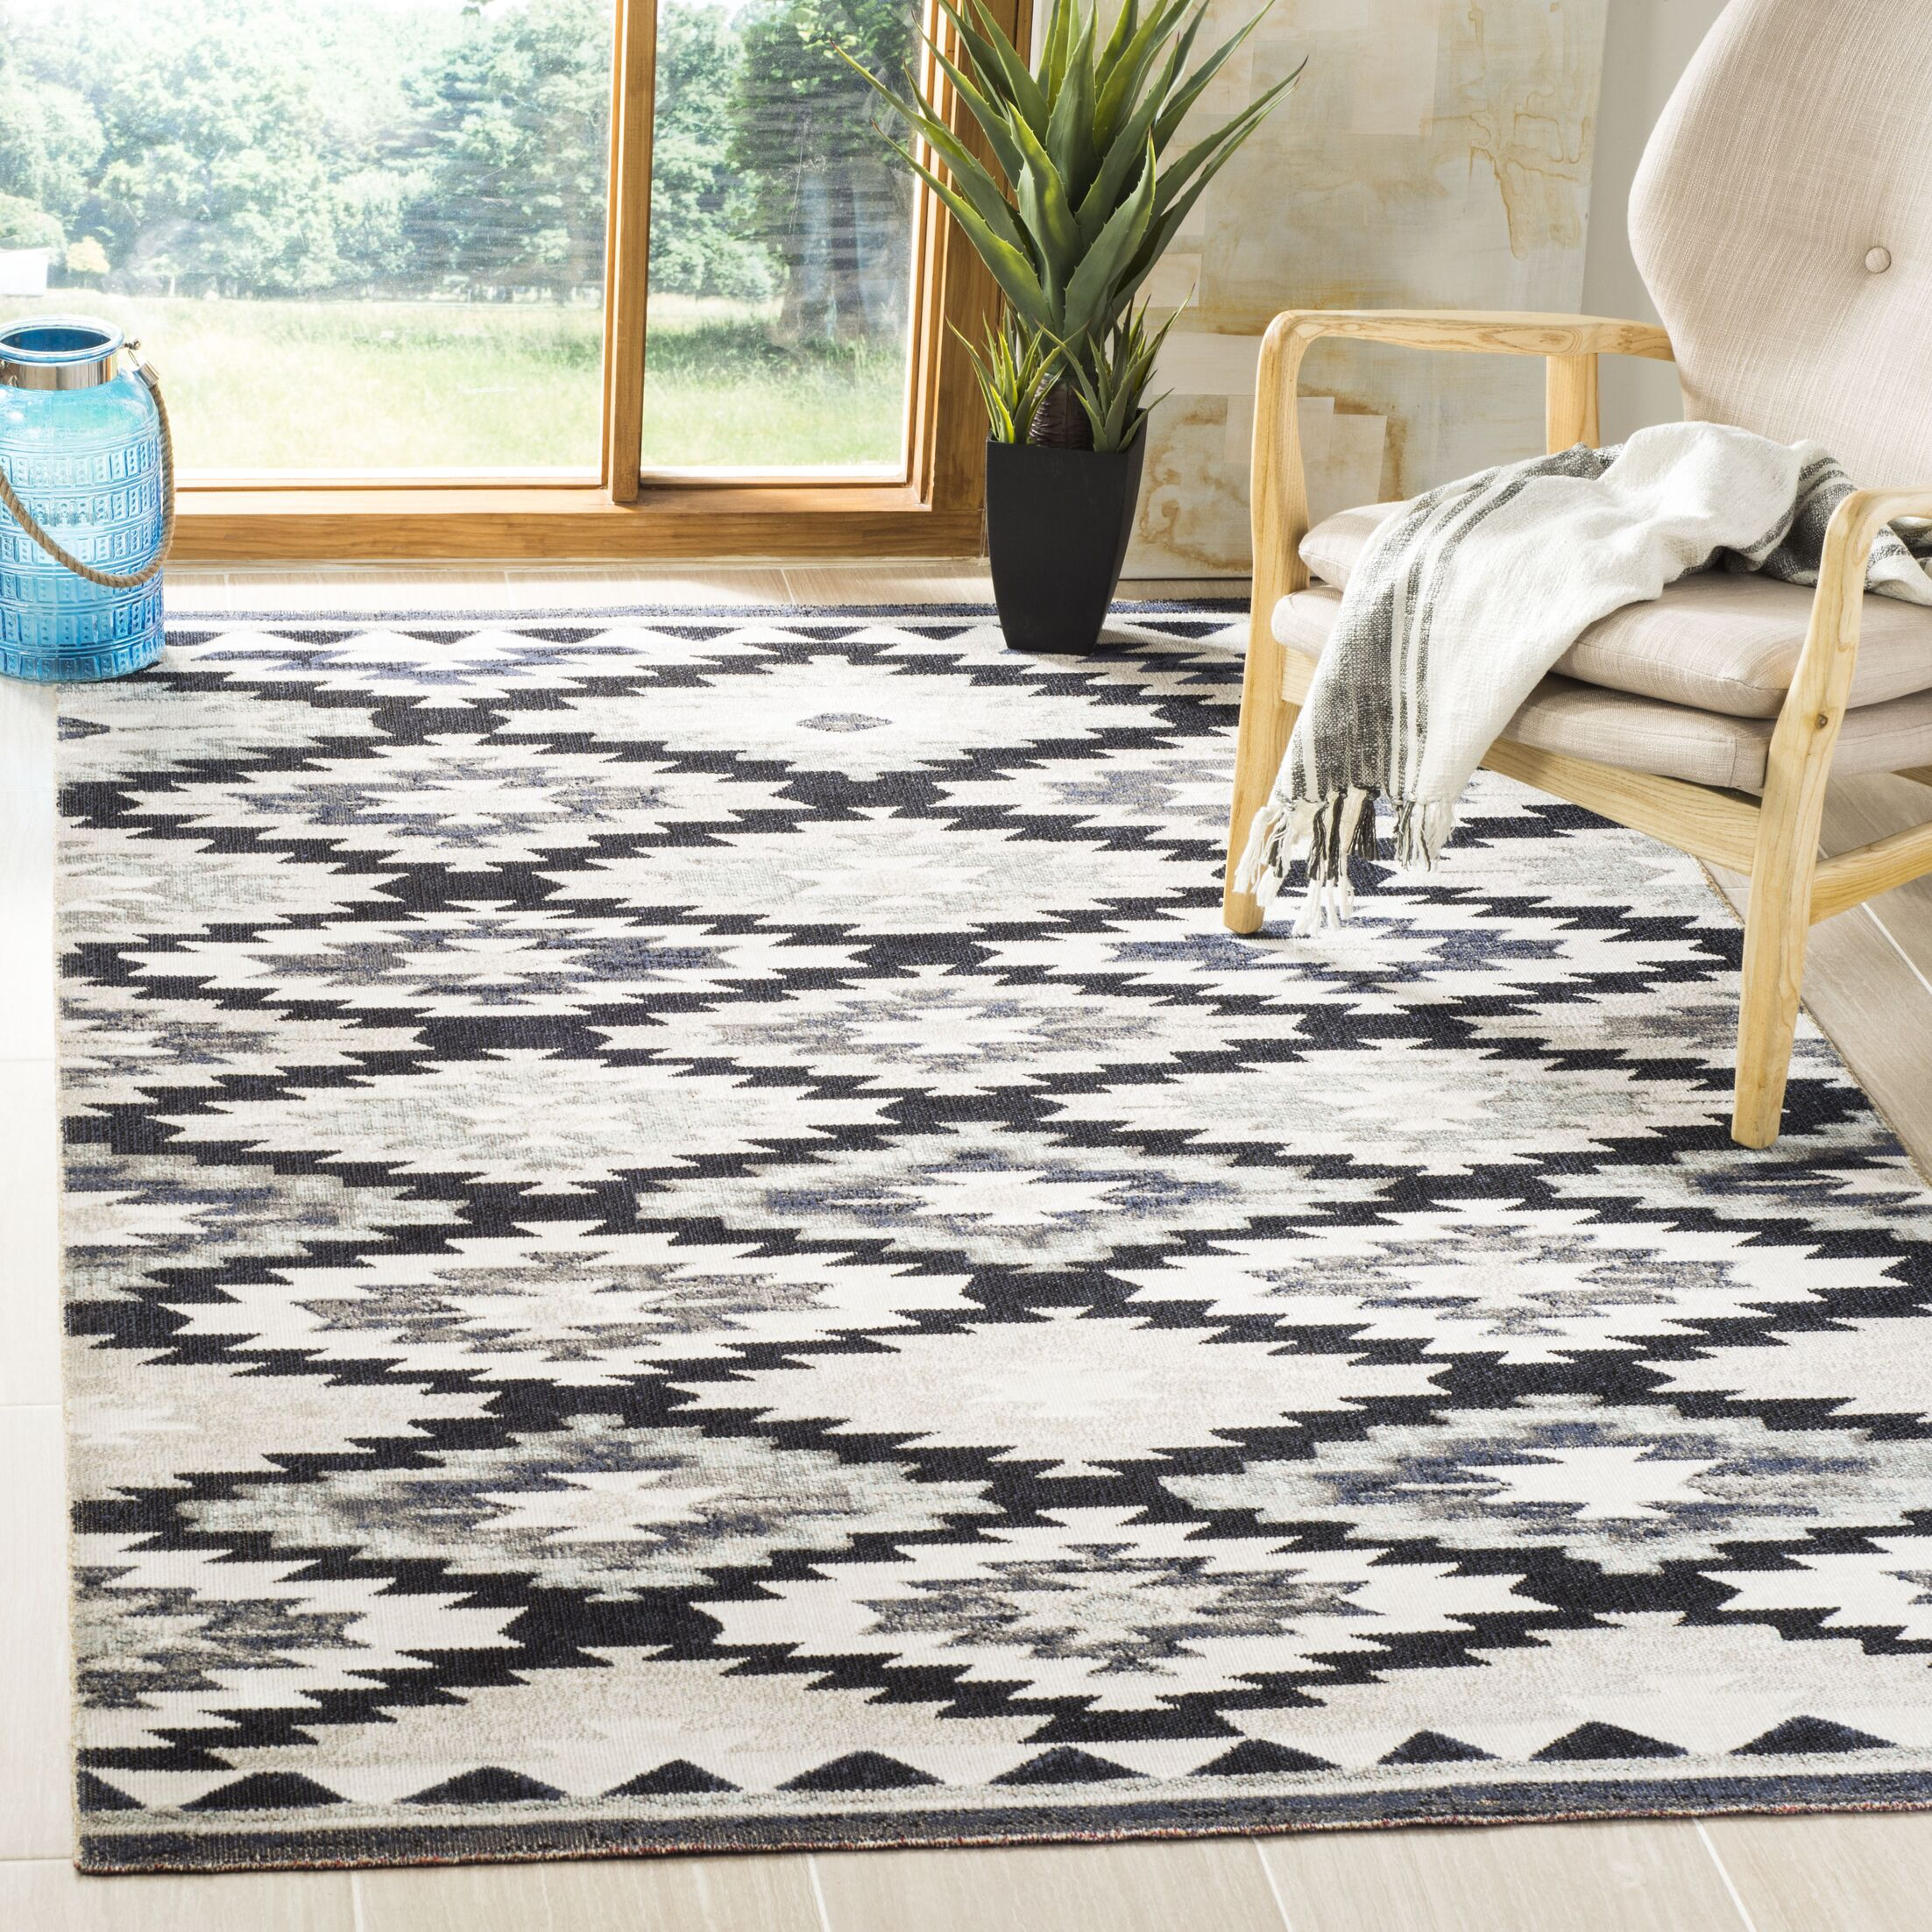 Griffeth Gray/Black Indoor/Outdoor Area Rug Rug Size: Rectangle 9' x 12'